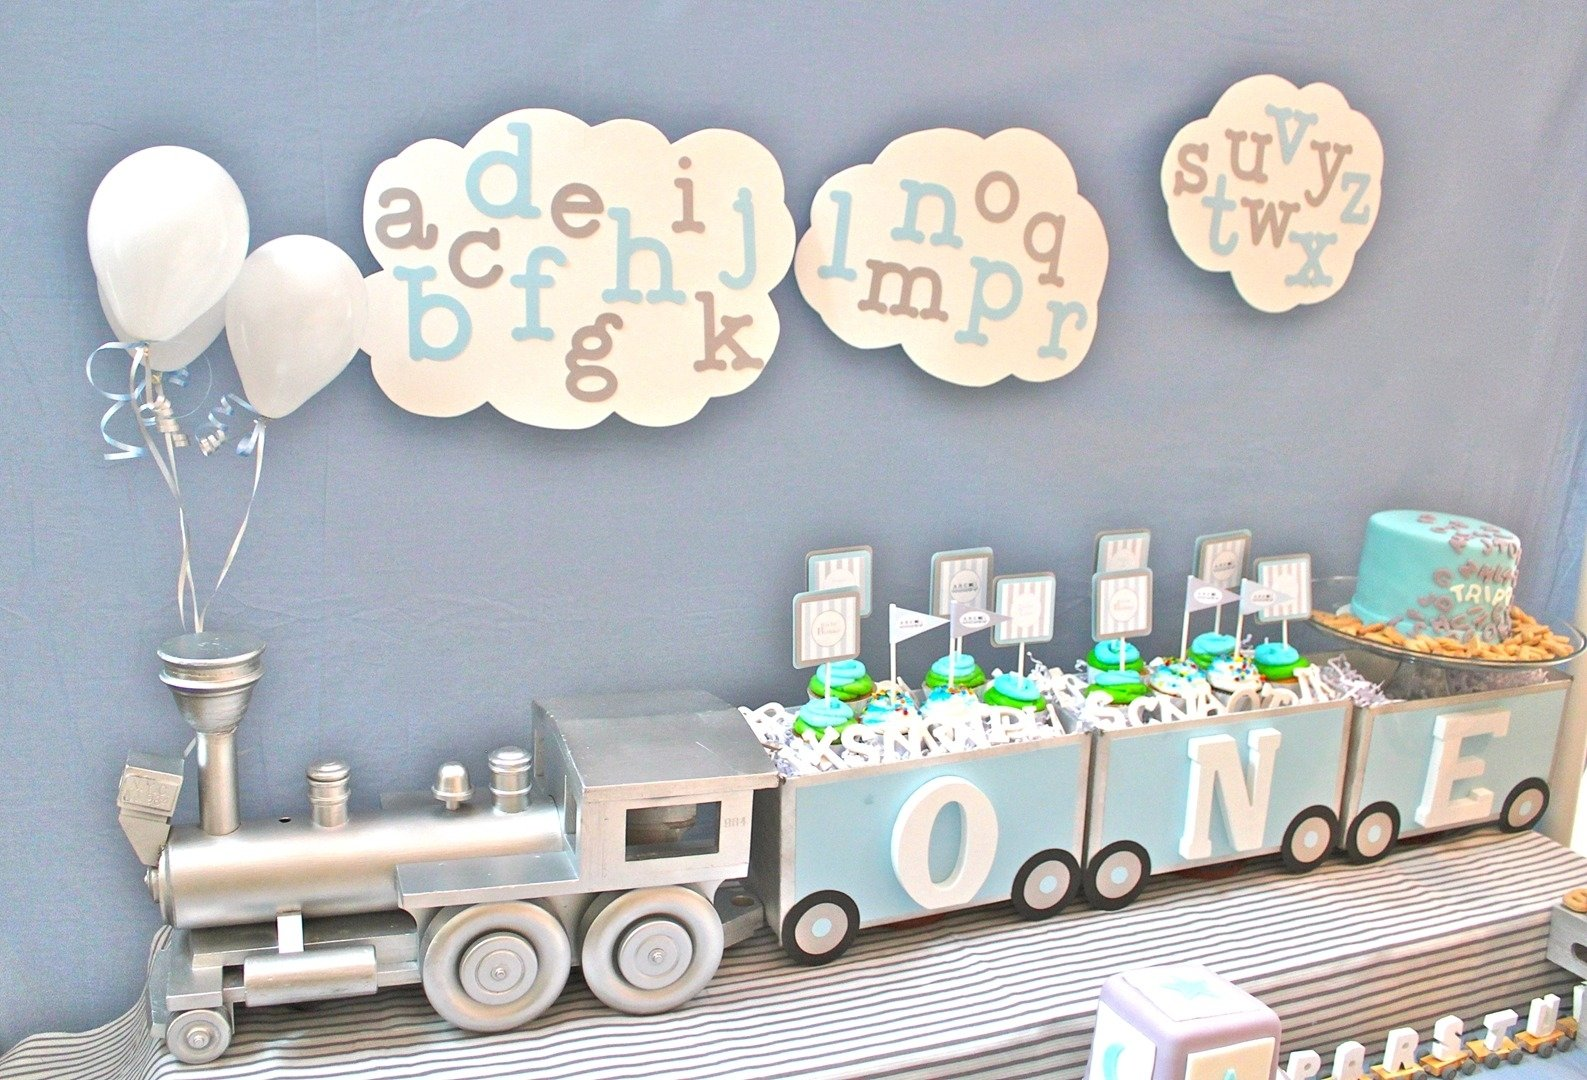 10 Fabulous Baby Boy First Birthday Party Ideas Cute Themes Dma Homes 73258